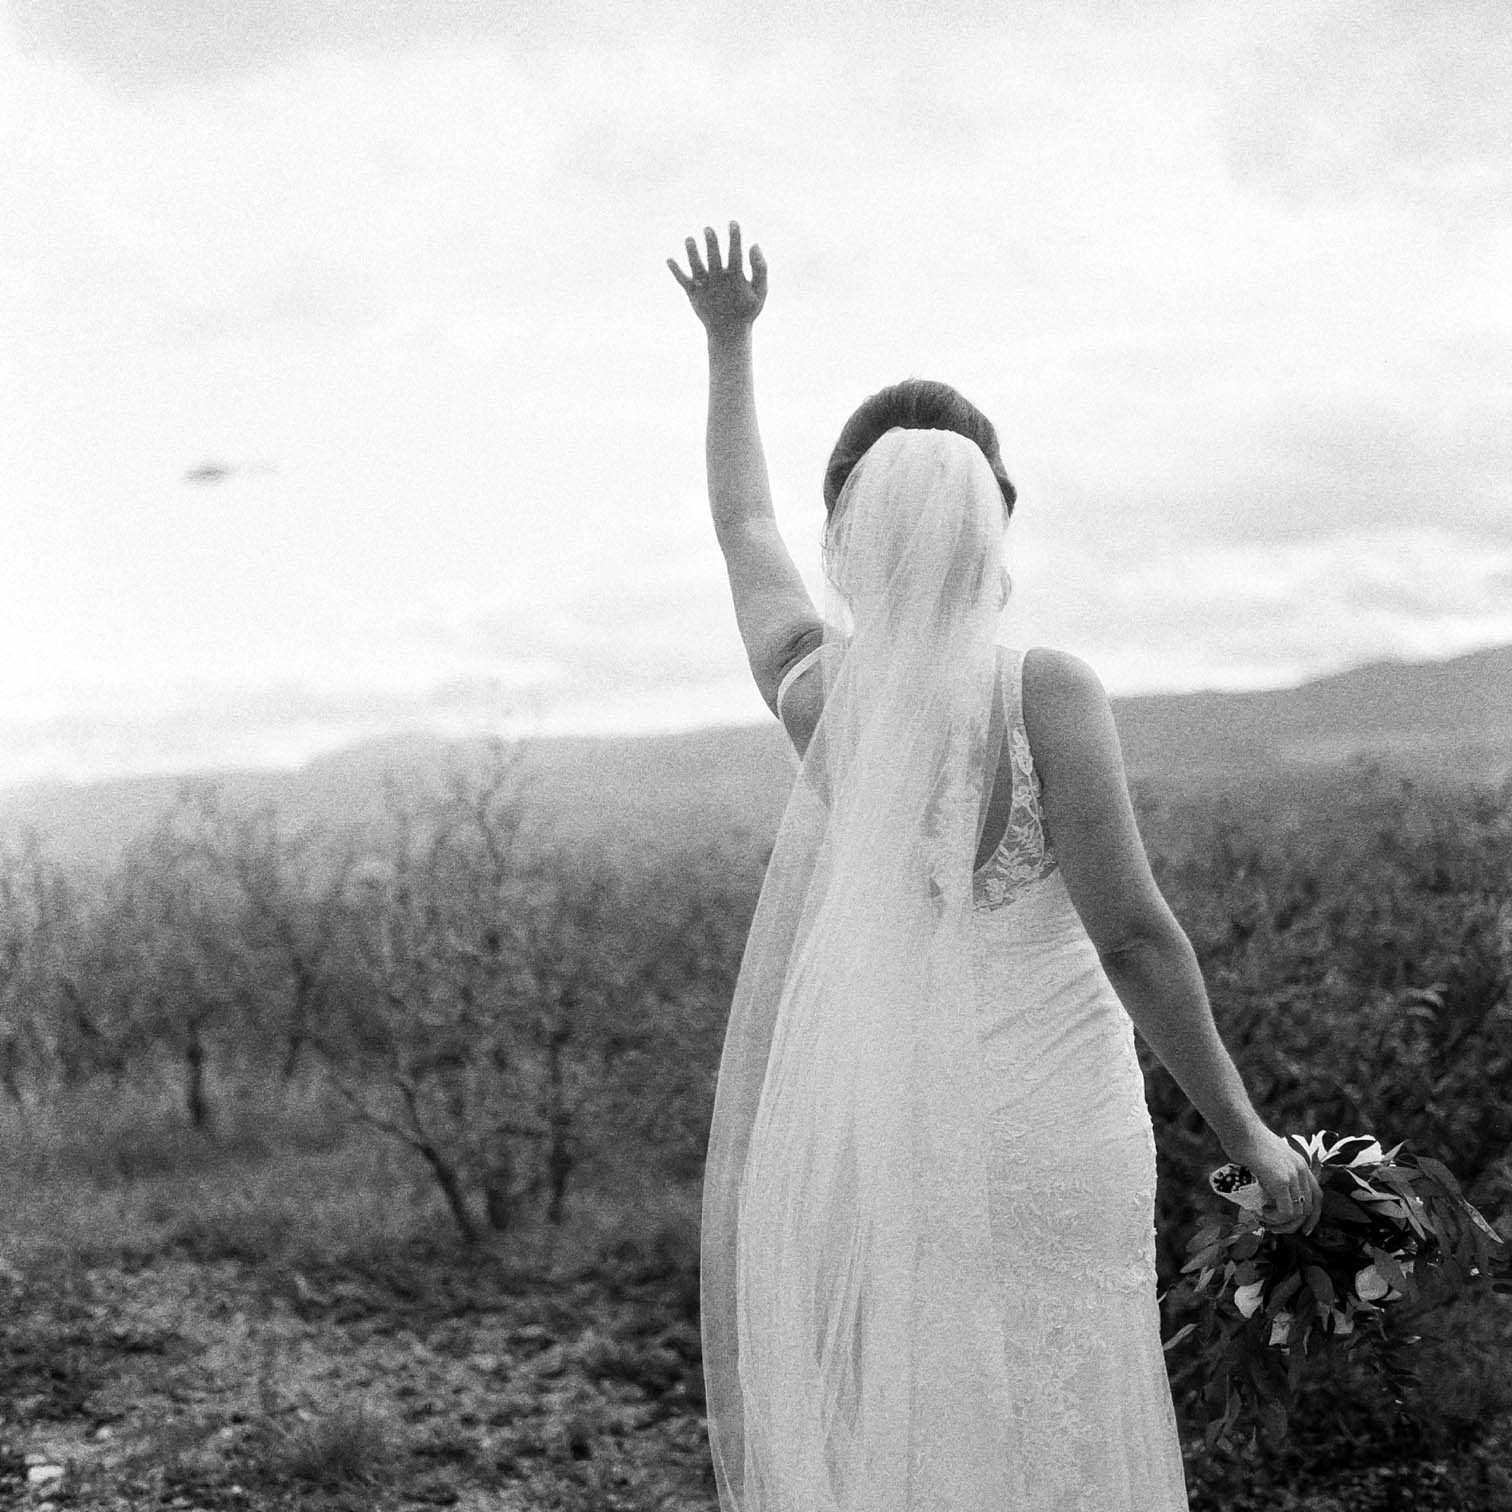 Rolleiflex Camera, Bride With Cathedral Veil, Danielle DeFiore Photographer, Bride and Groom, Colorado Wedding Photographers, Castle Wedding, Classic Black Tie Wedding, Film Photographer, Colorado Weddings